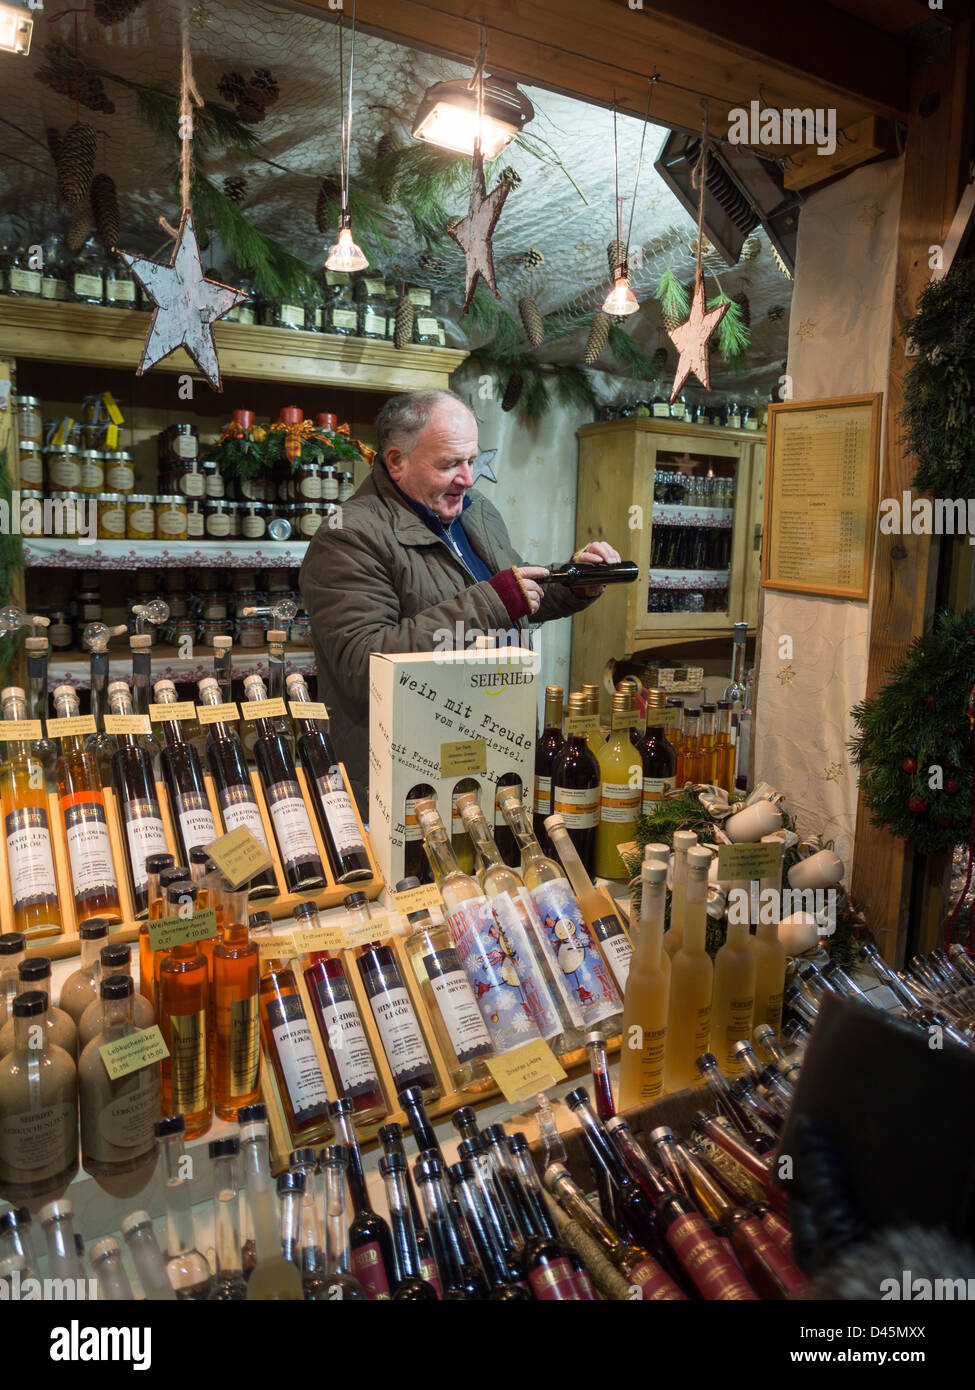 Sampling the Schnapps and other Liqueurs. A shopkeeper at a Christmas Market pours a sample of a liquor - Stock Image